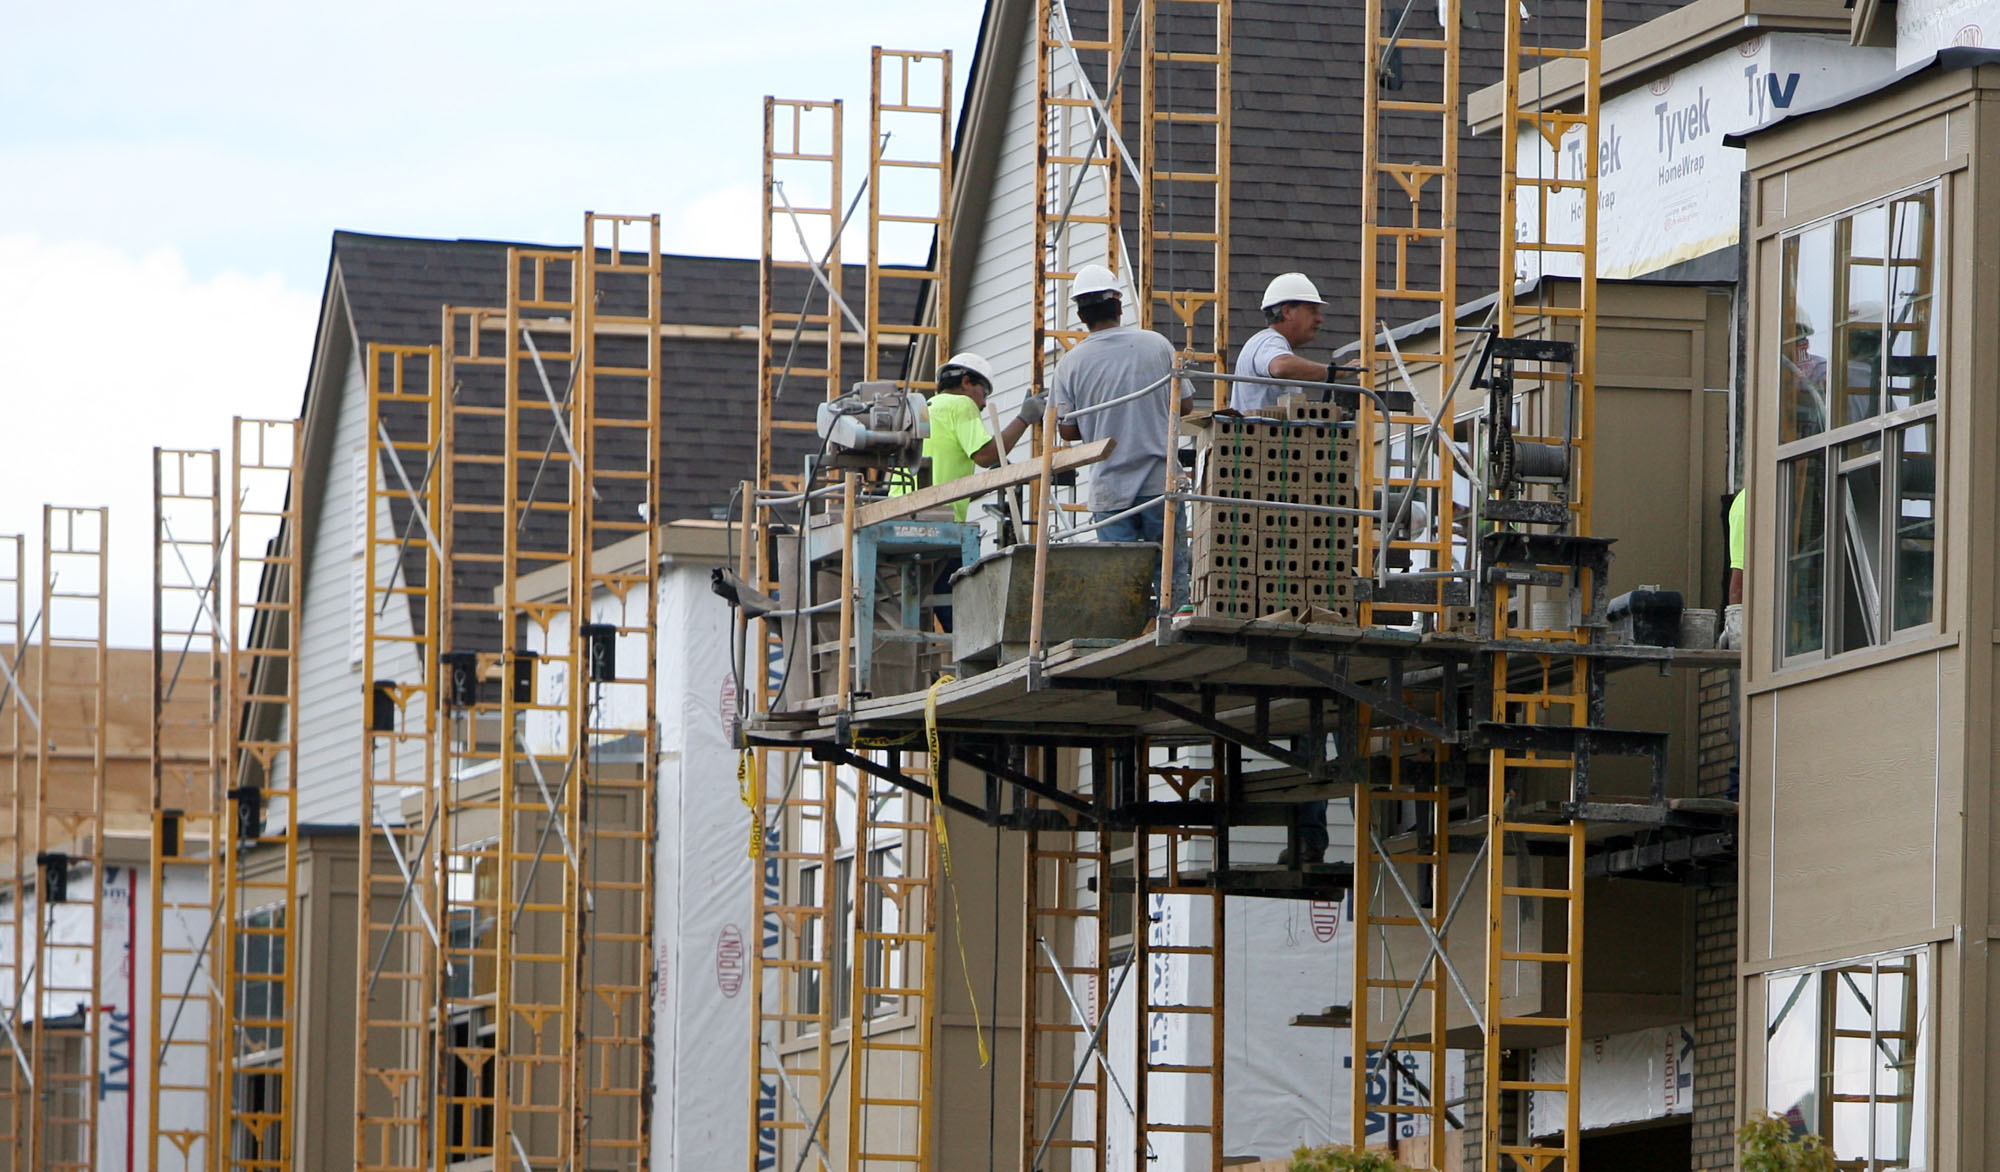 Workers completingthe facades on a row of condominiums in the Denver area.